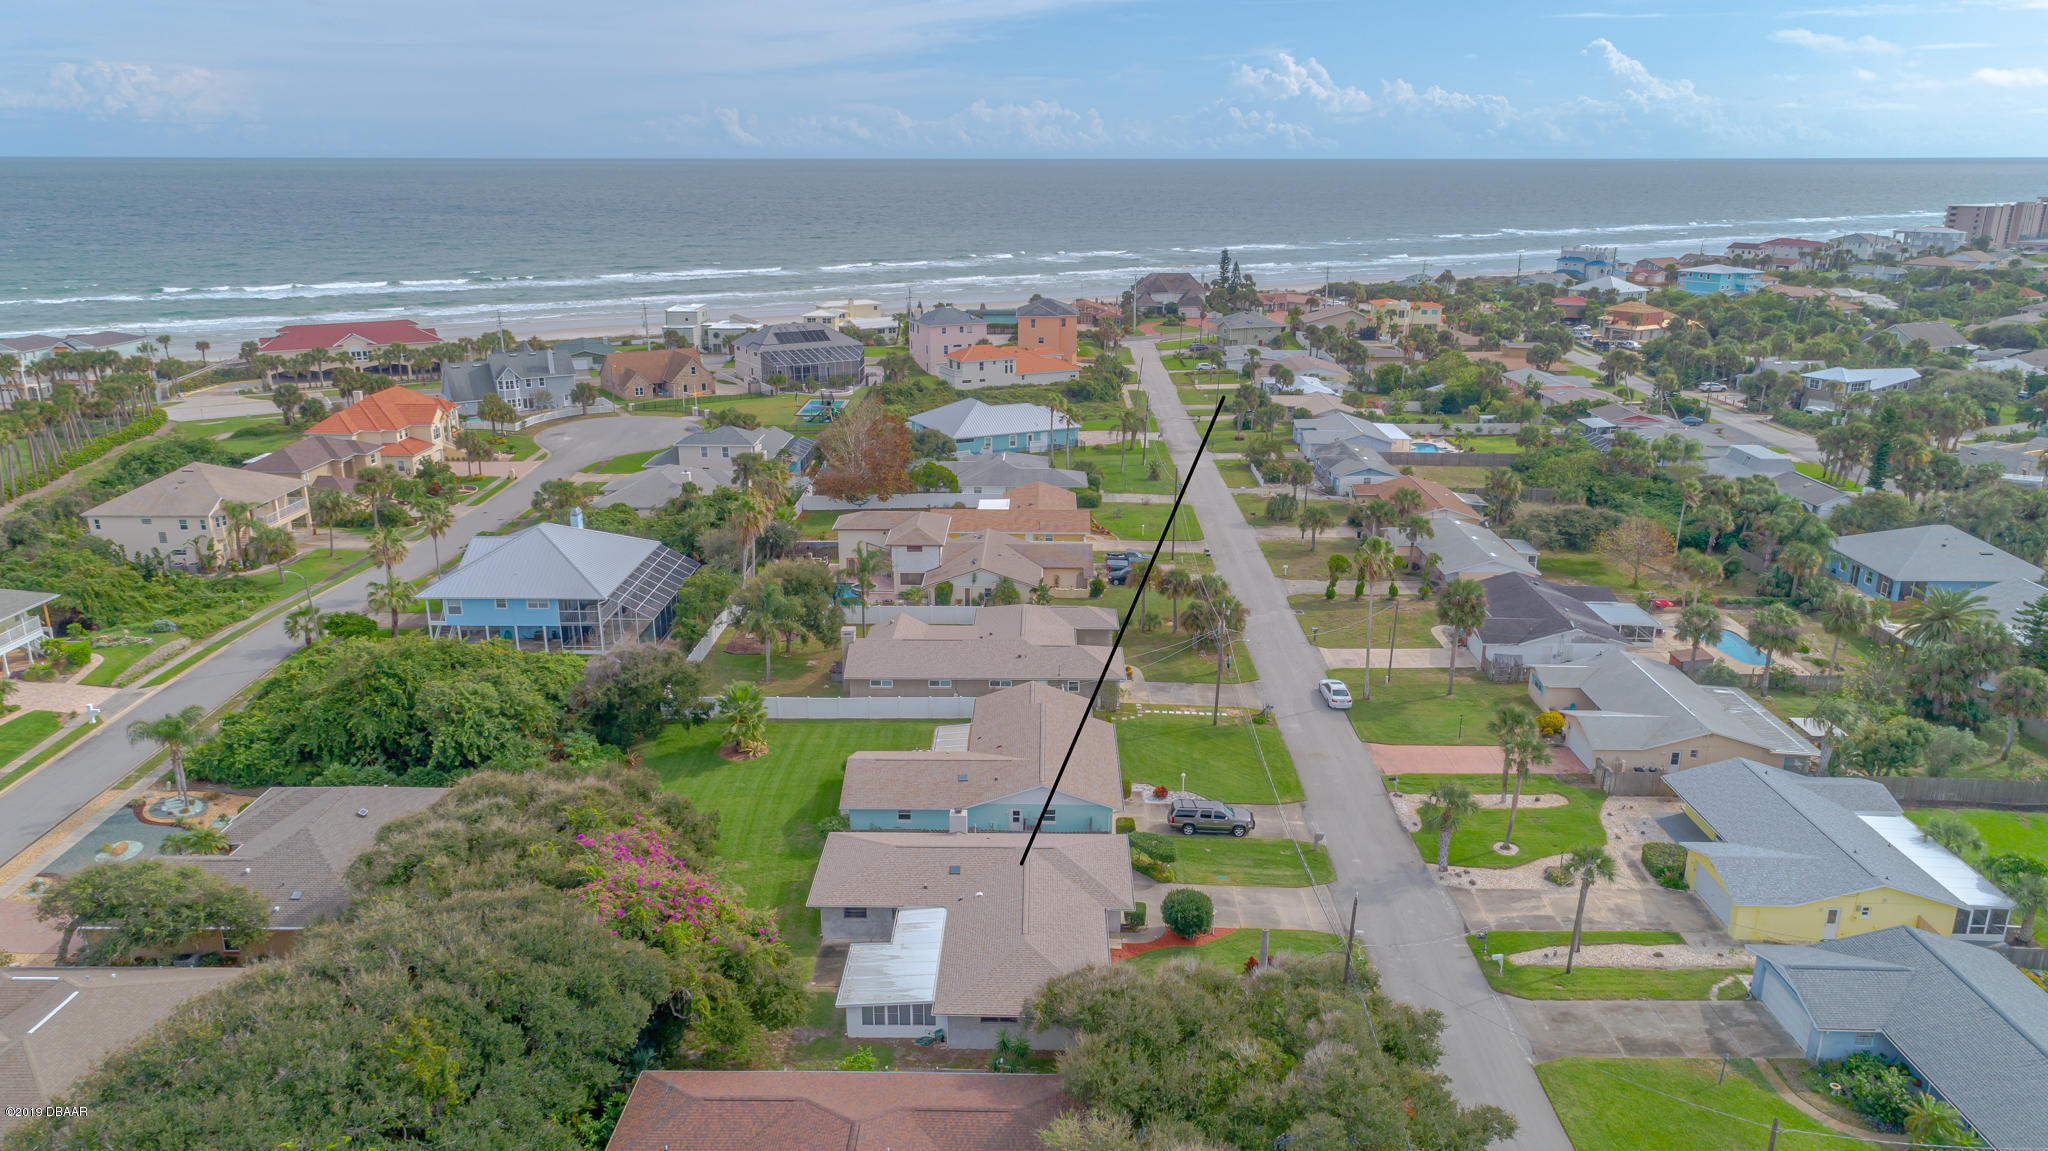 80 Cindy Ponce Inlet - 37